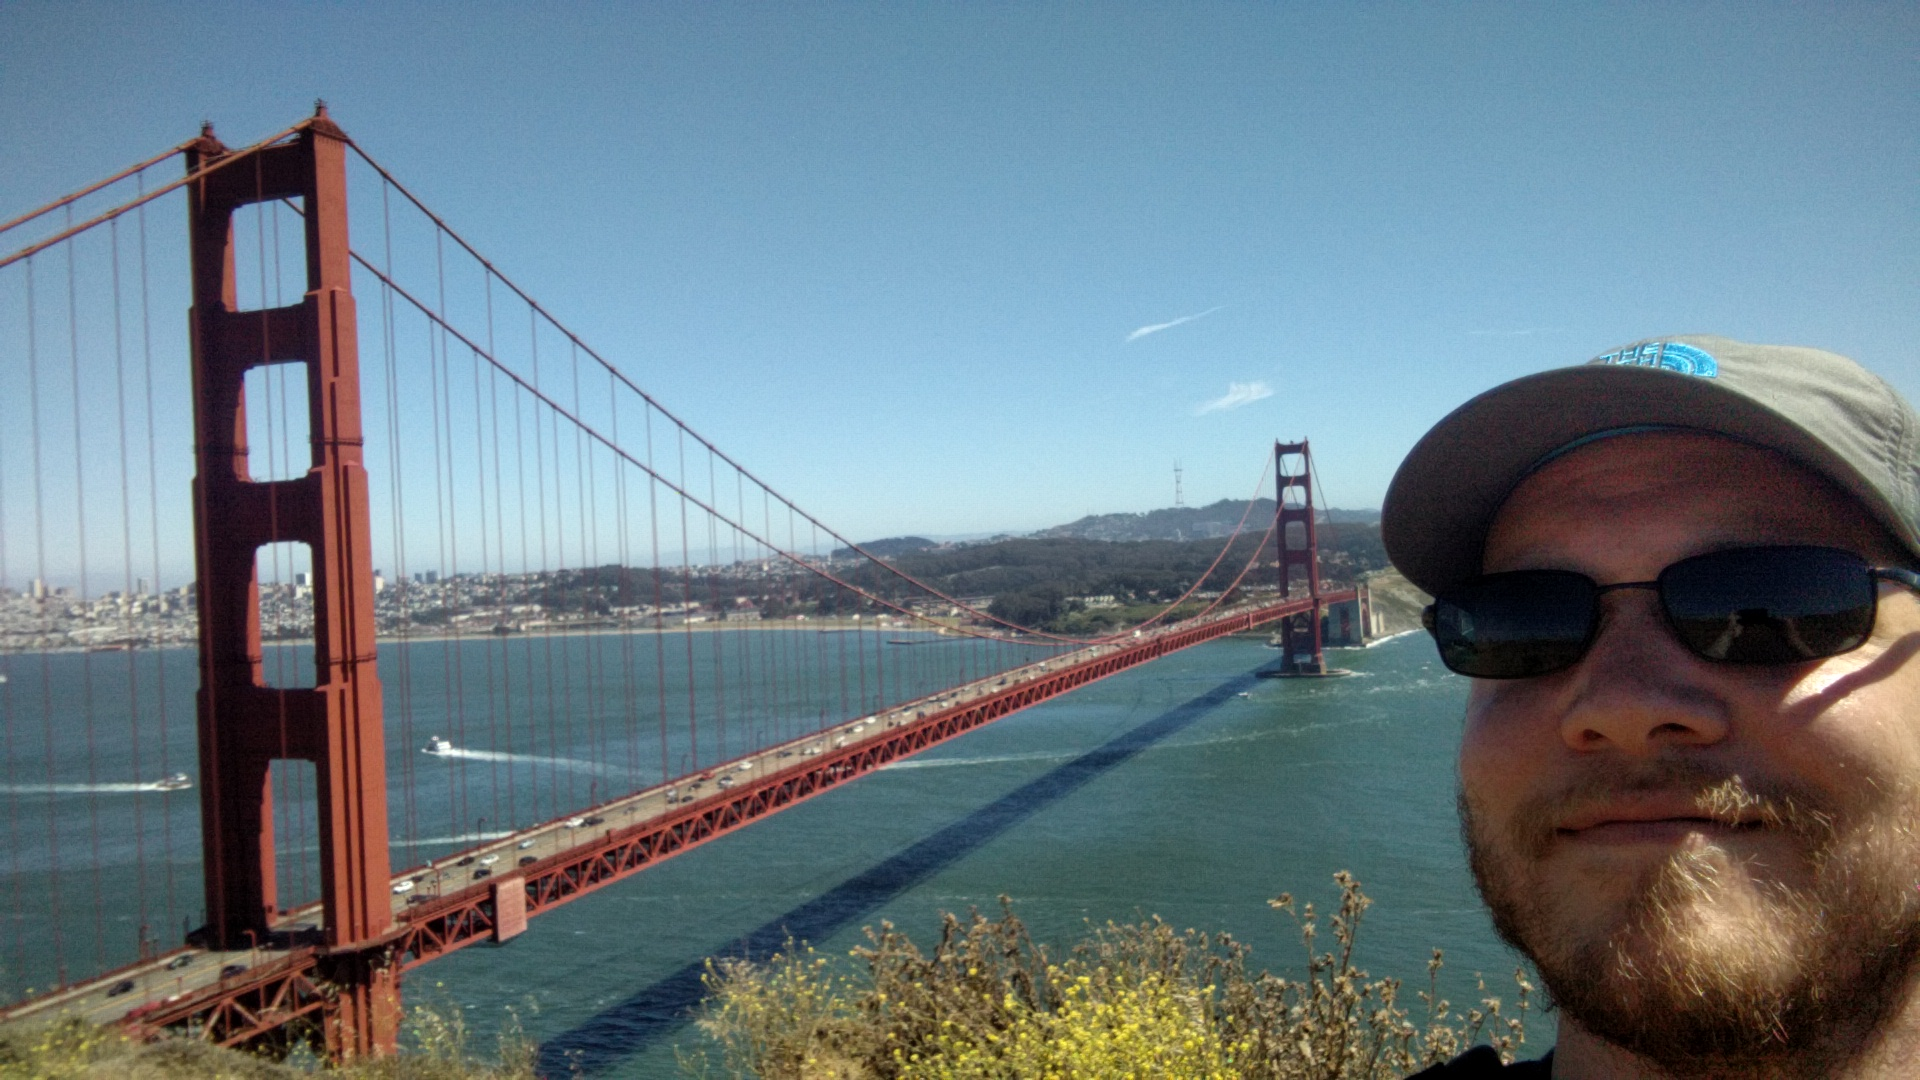 The Golden Gate Bridge. Which is red for some reason.